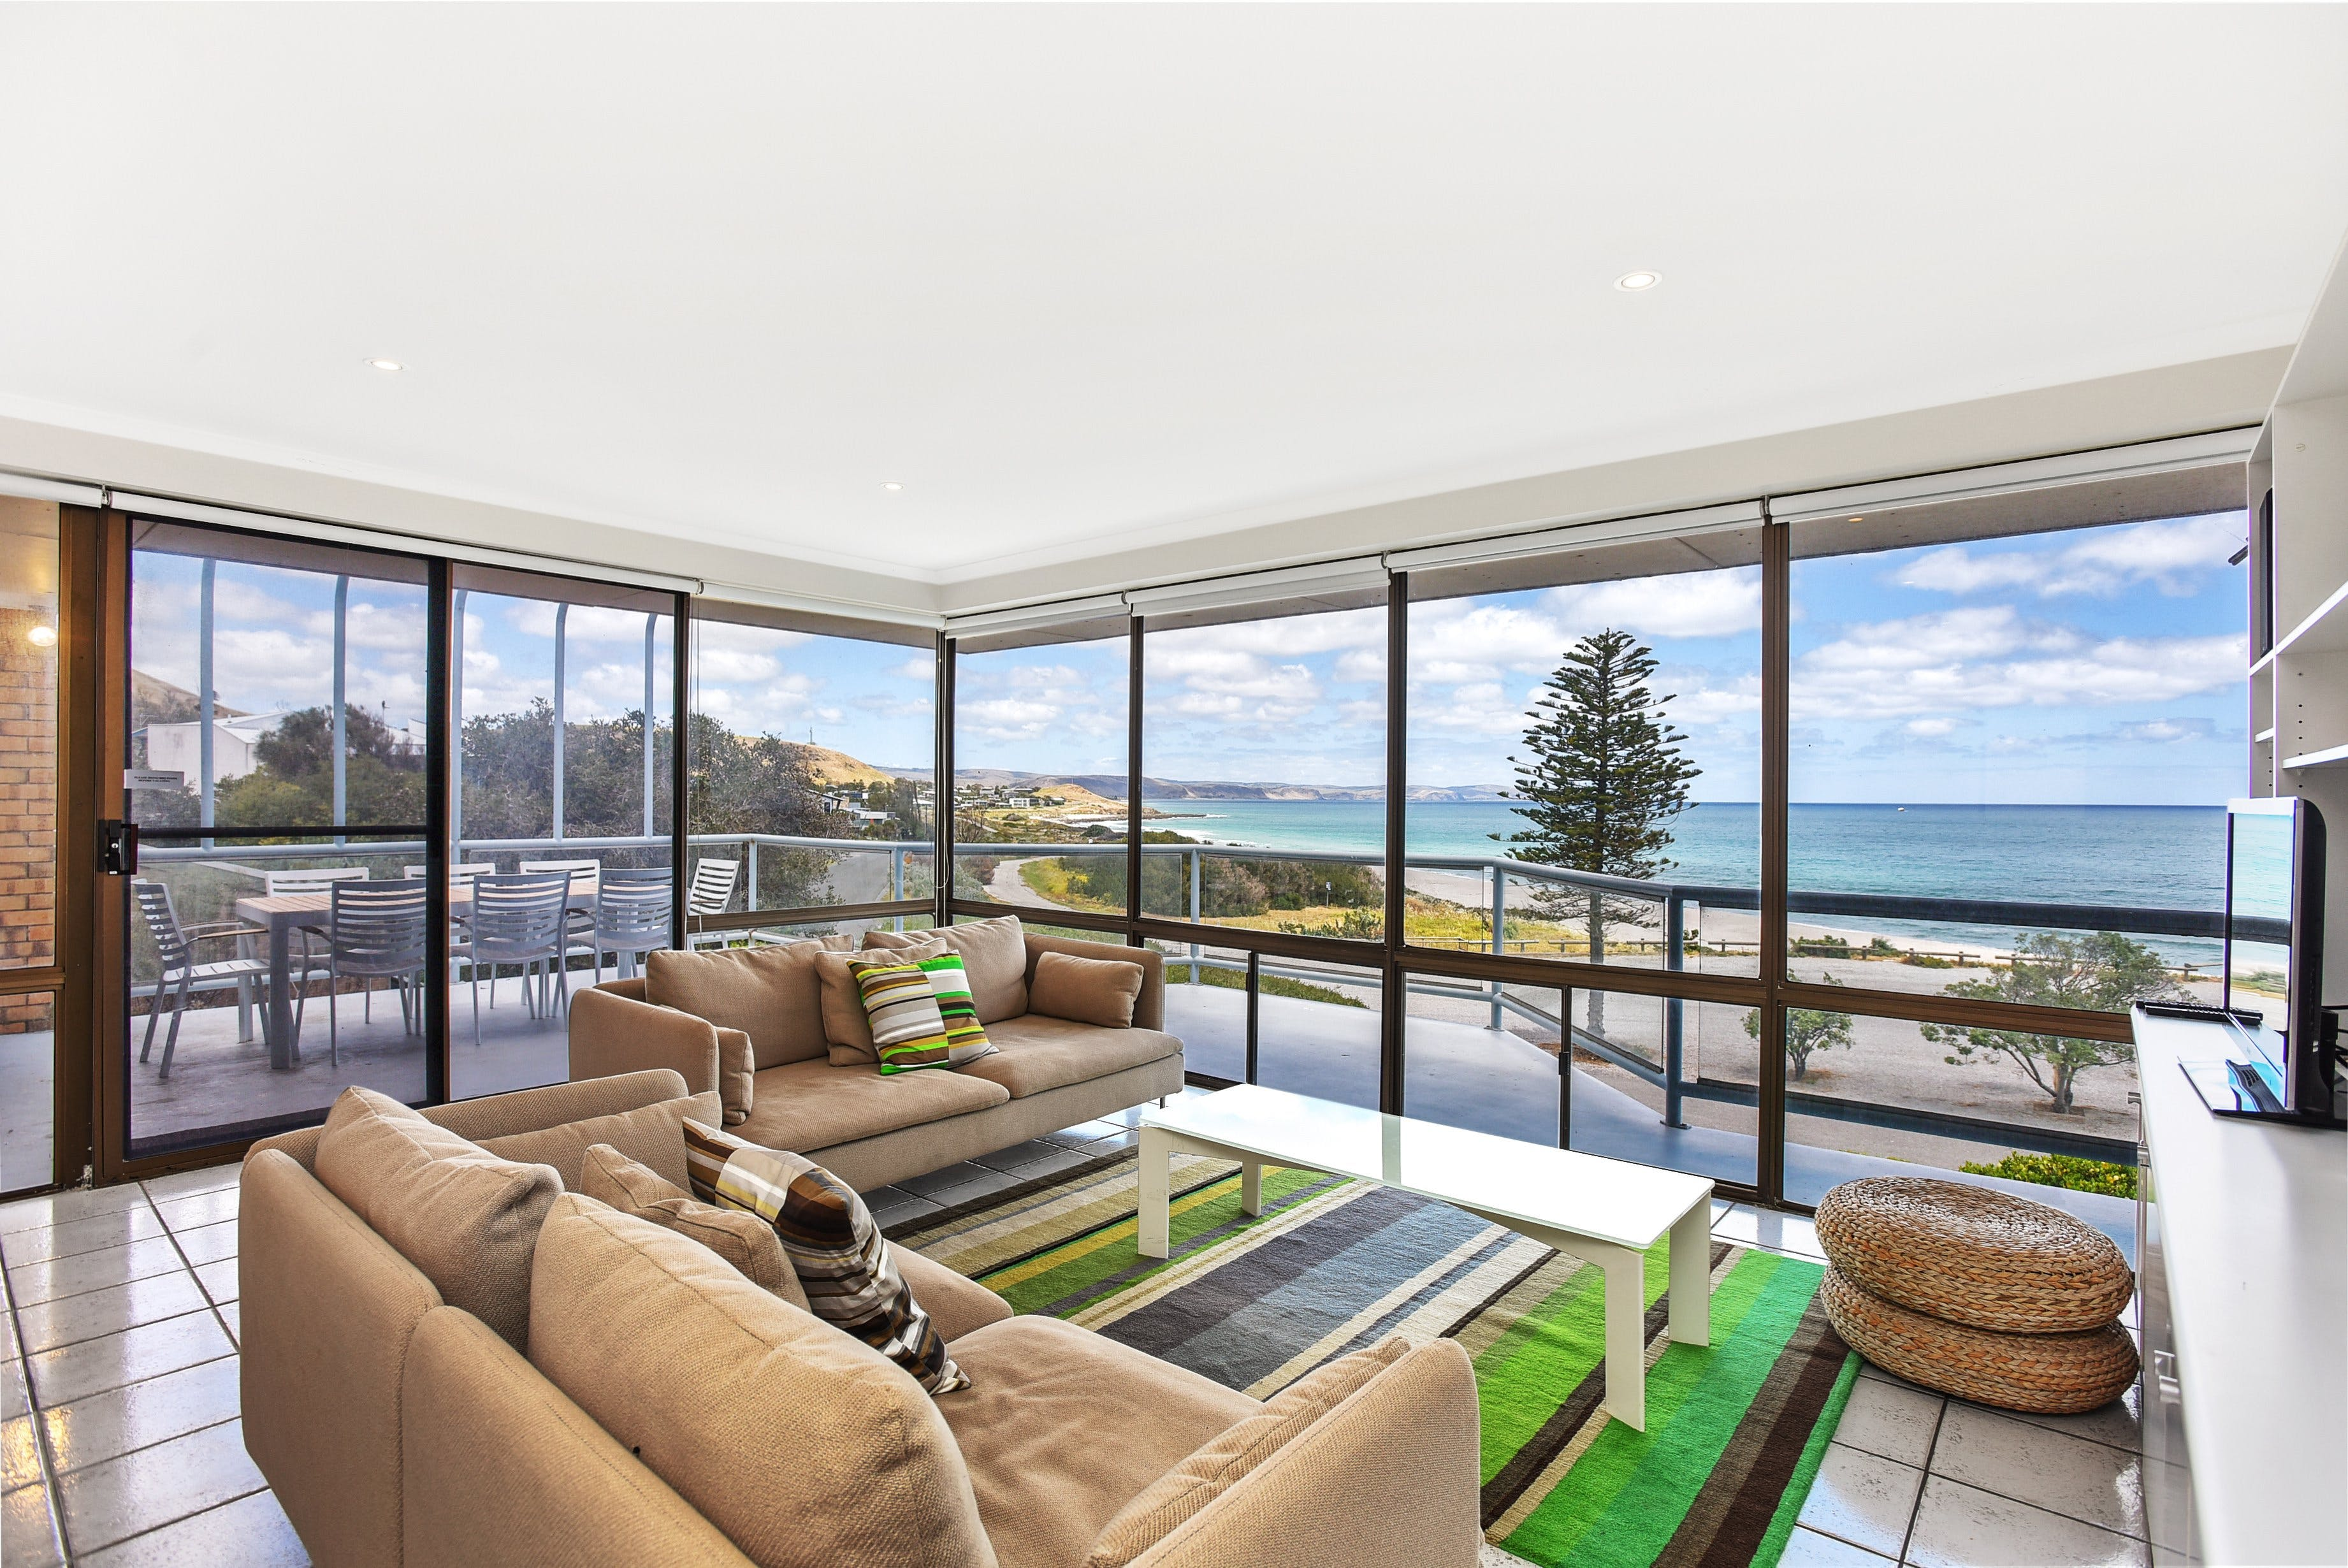 2/101 Gold Coast Drive Carrickalinga - Accommodation in Surfers Paradise